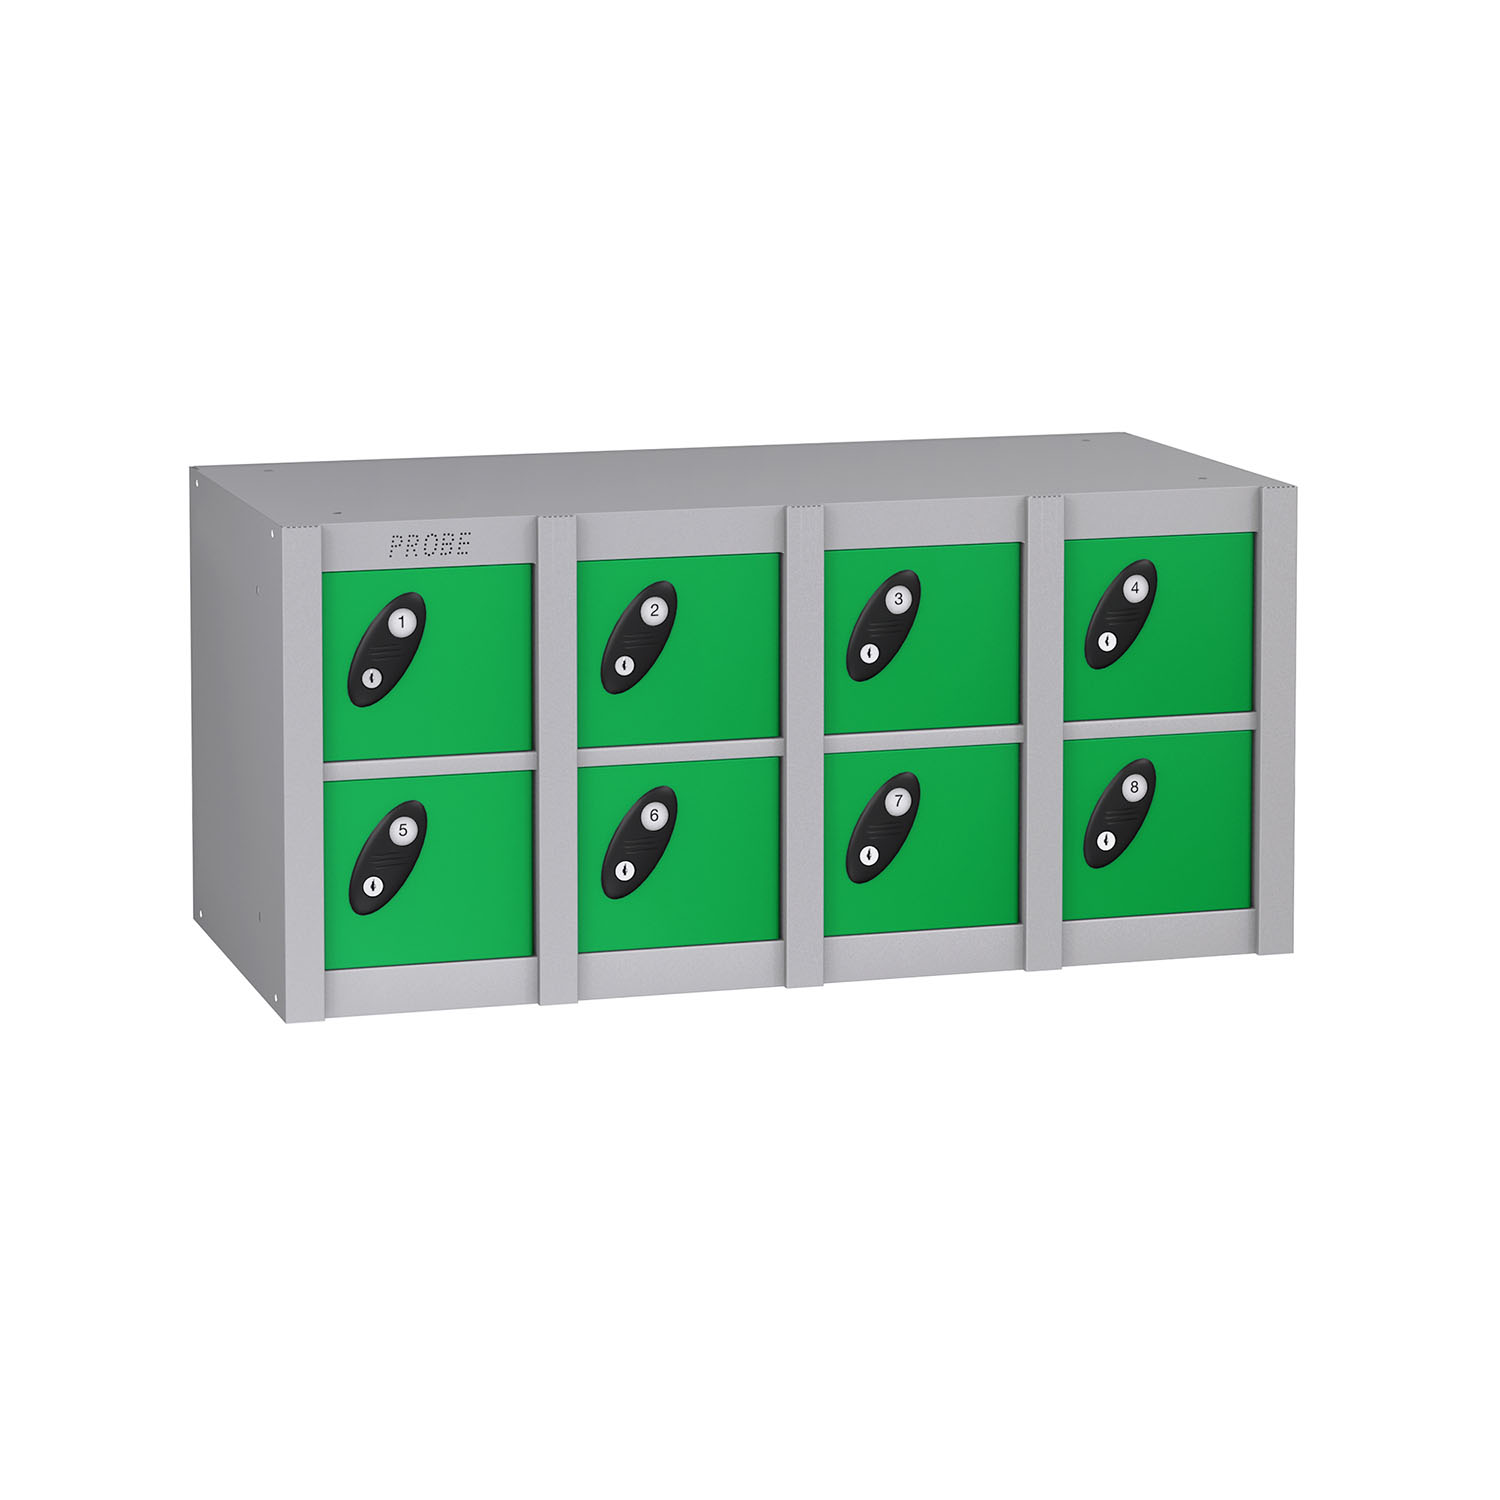 Probe 8 doors minibox lockers in green colour